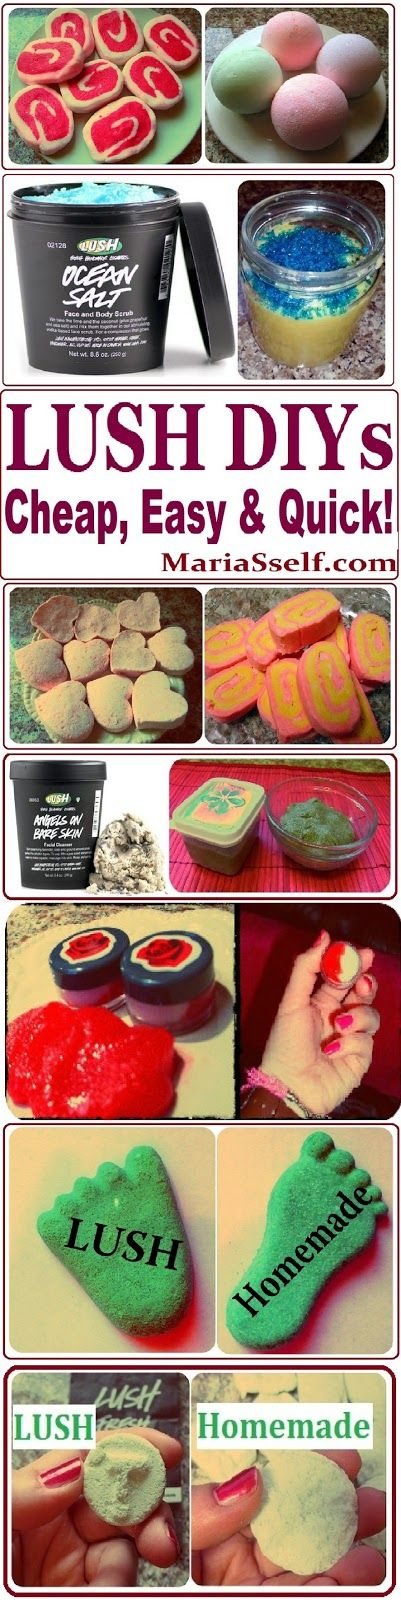 DIY LUSH Product Recipes, How to Make them CHEAP, EASY & QUICK (Maria's self, lots of great ideas!)